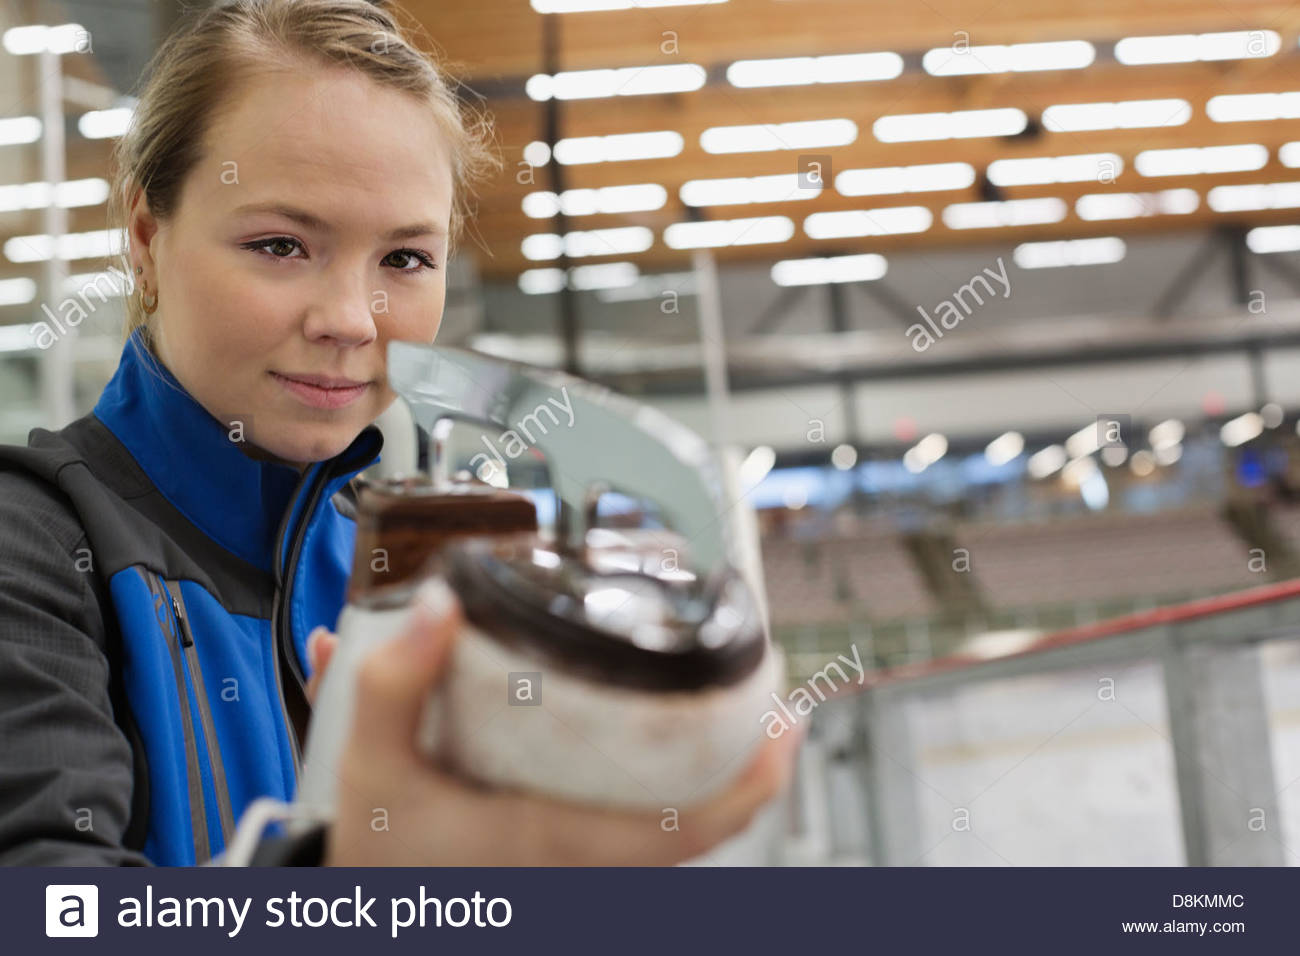 Female figure skater inspecting blades in skating rink - Stock Image